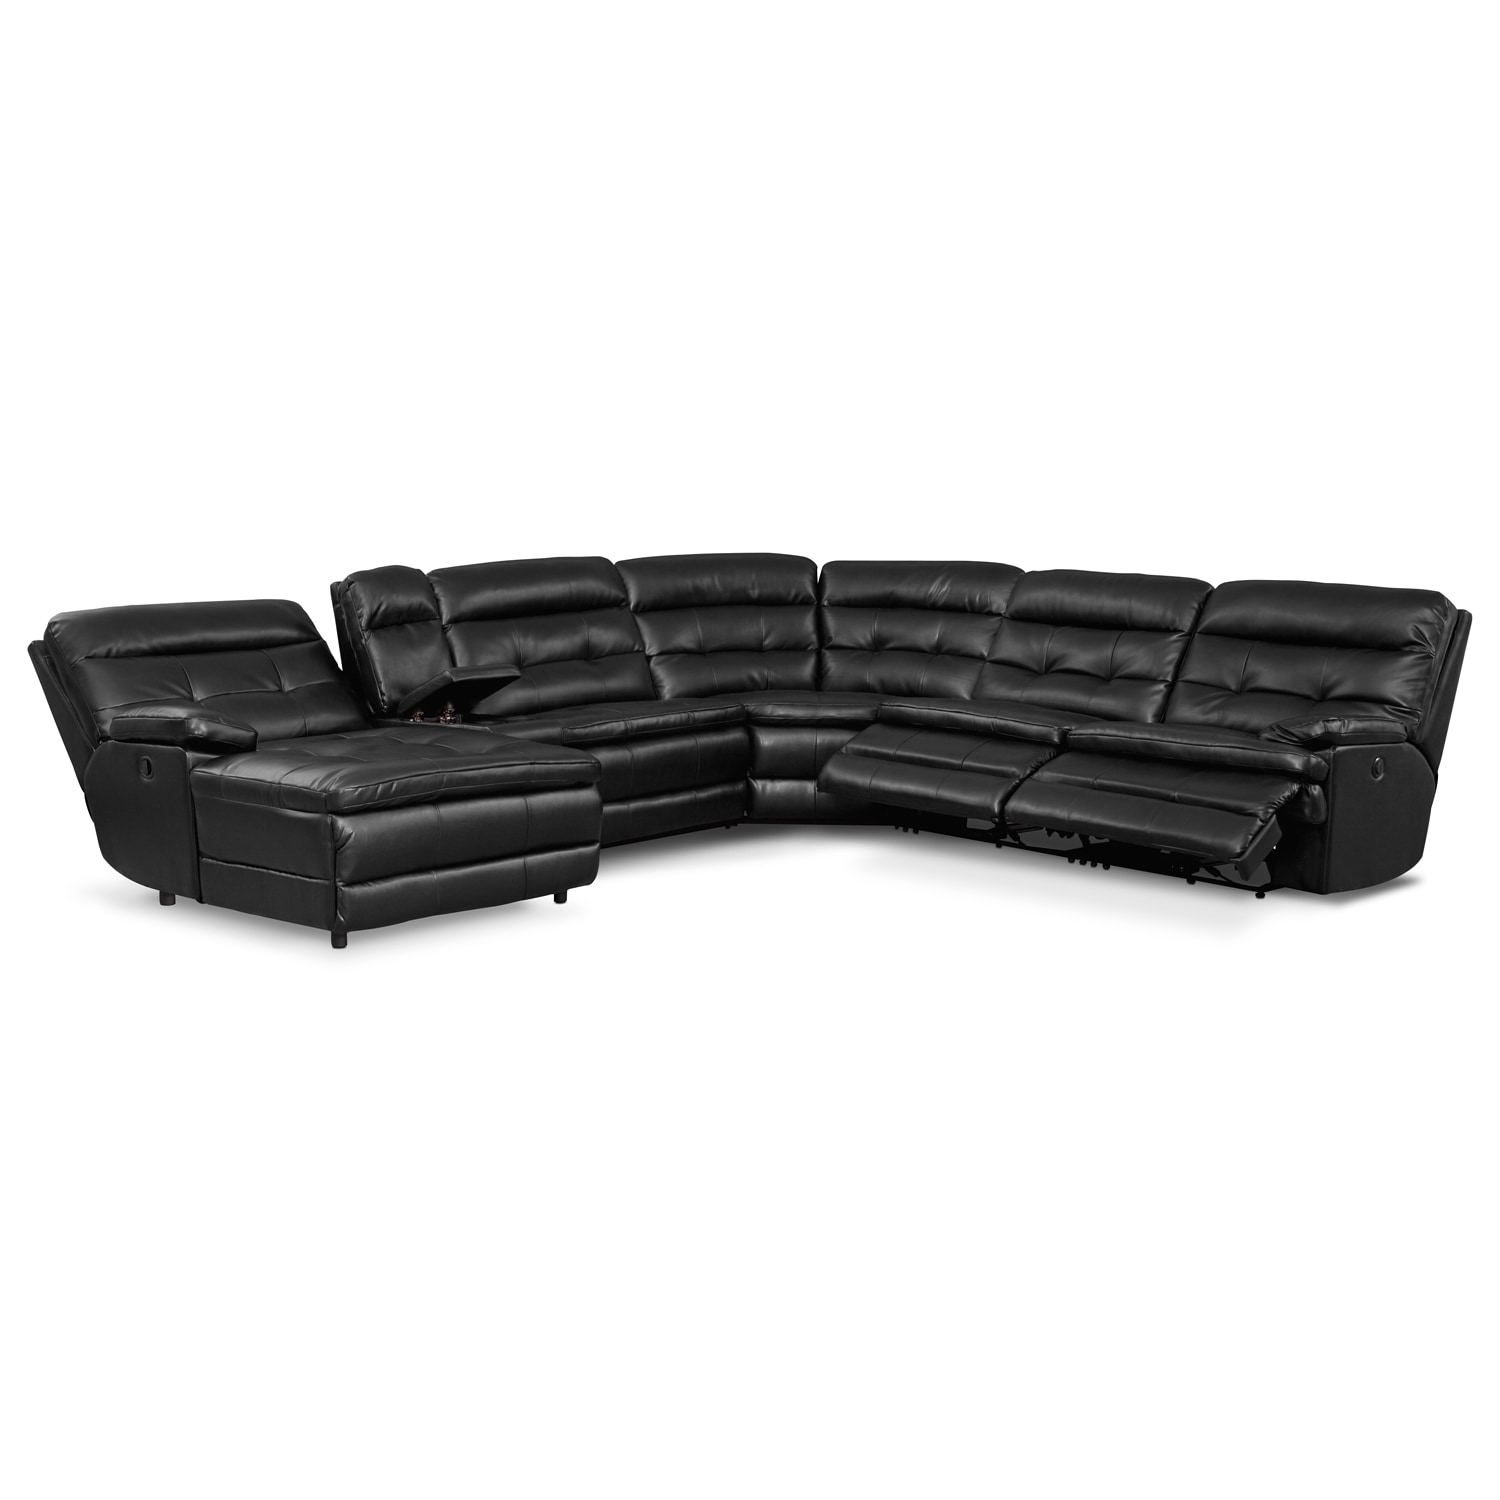 Midori 6 Pc Leather Power Reclining Sectional Sofa: Document Moved